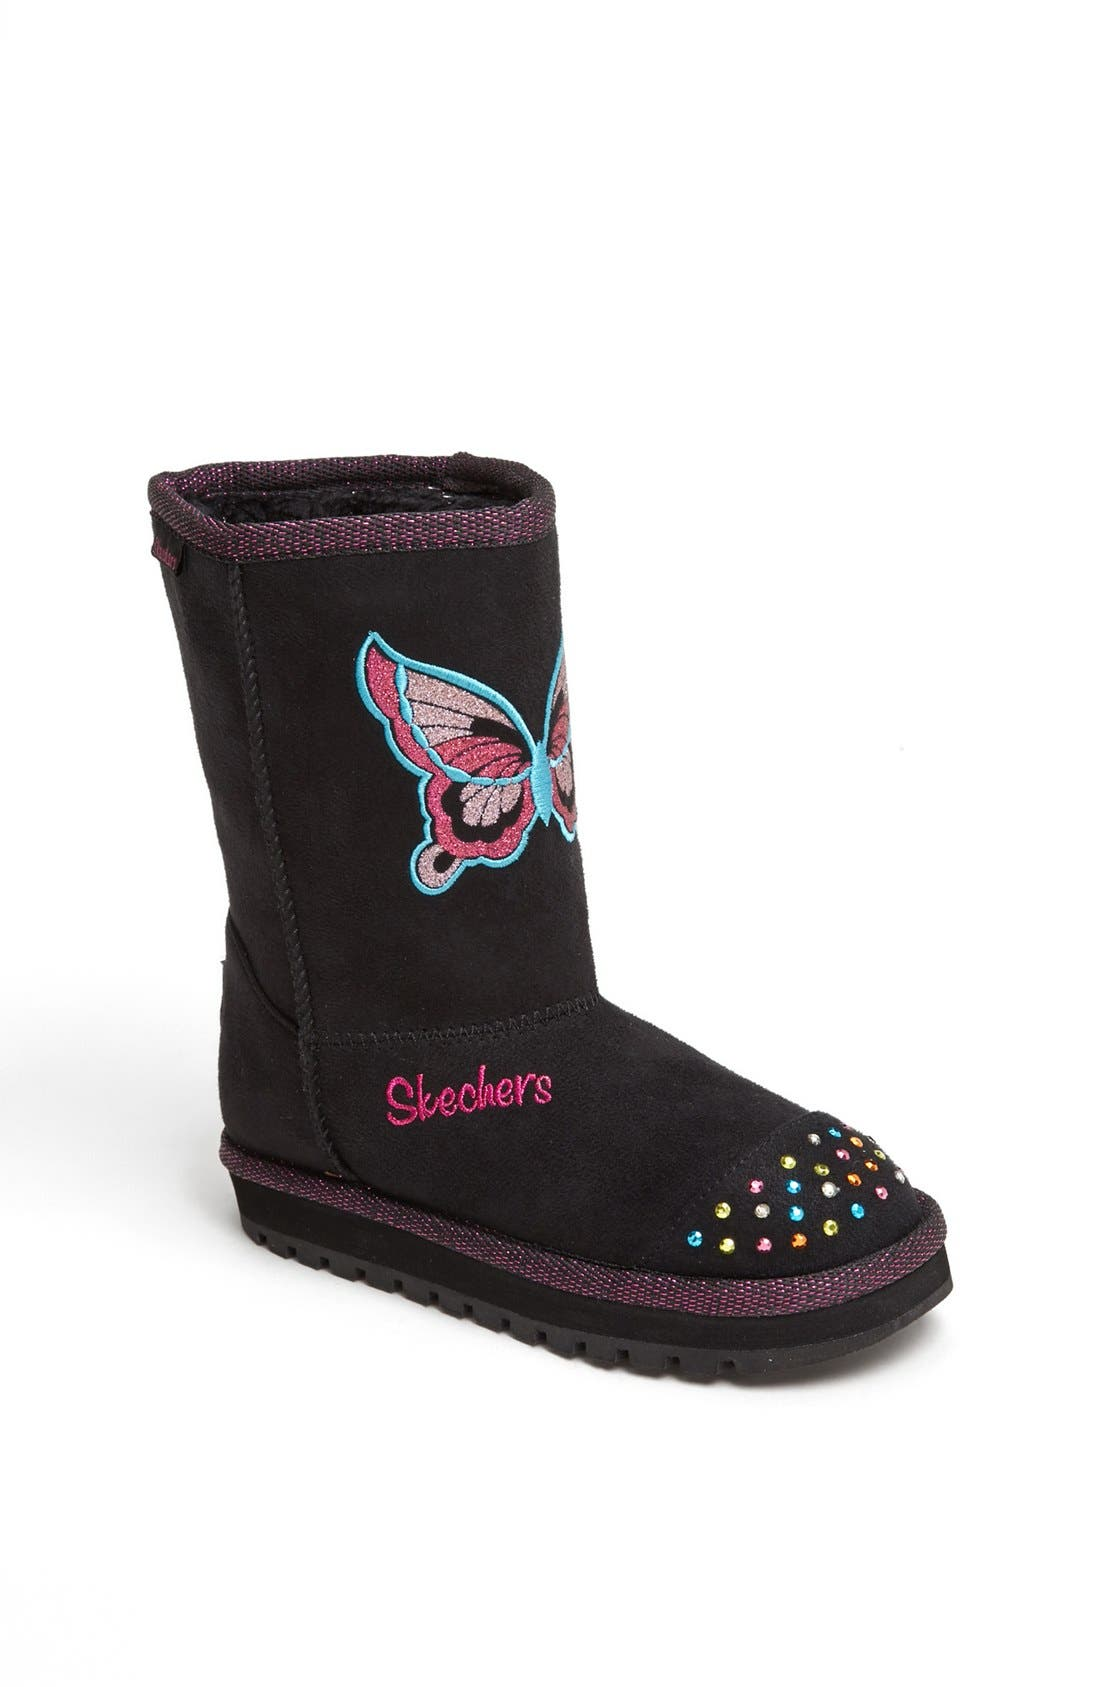 Alternate Image 1 Selected - SKECHERS 'Keepsakes' Light Up Boot (Walker, Toddler, Little Kid)